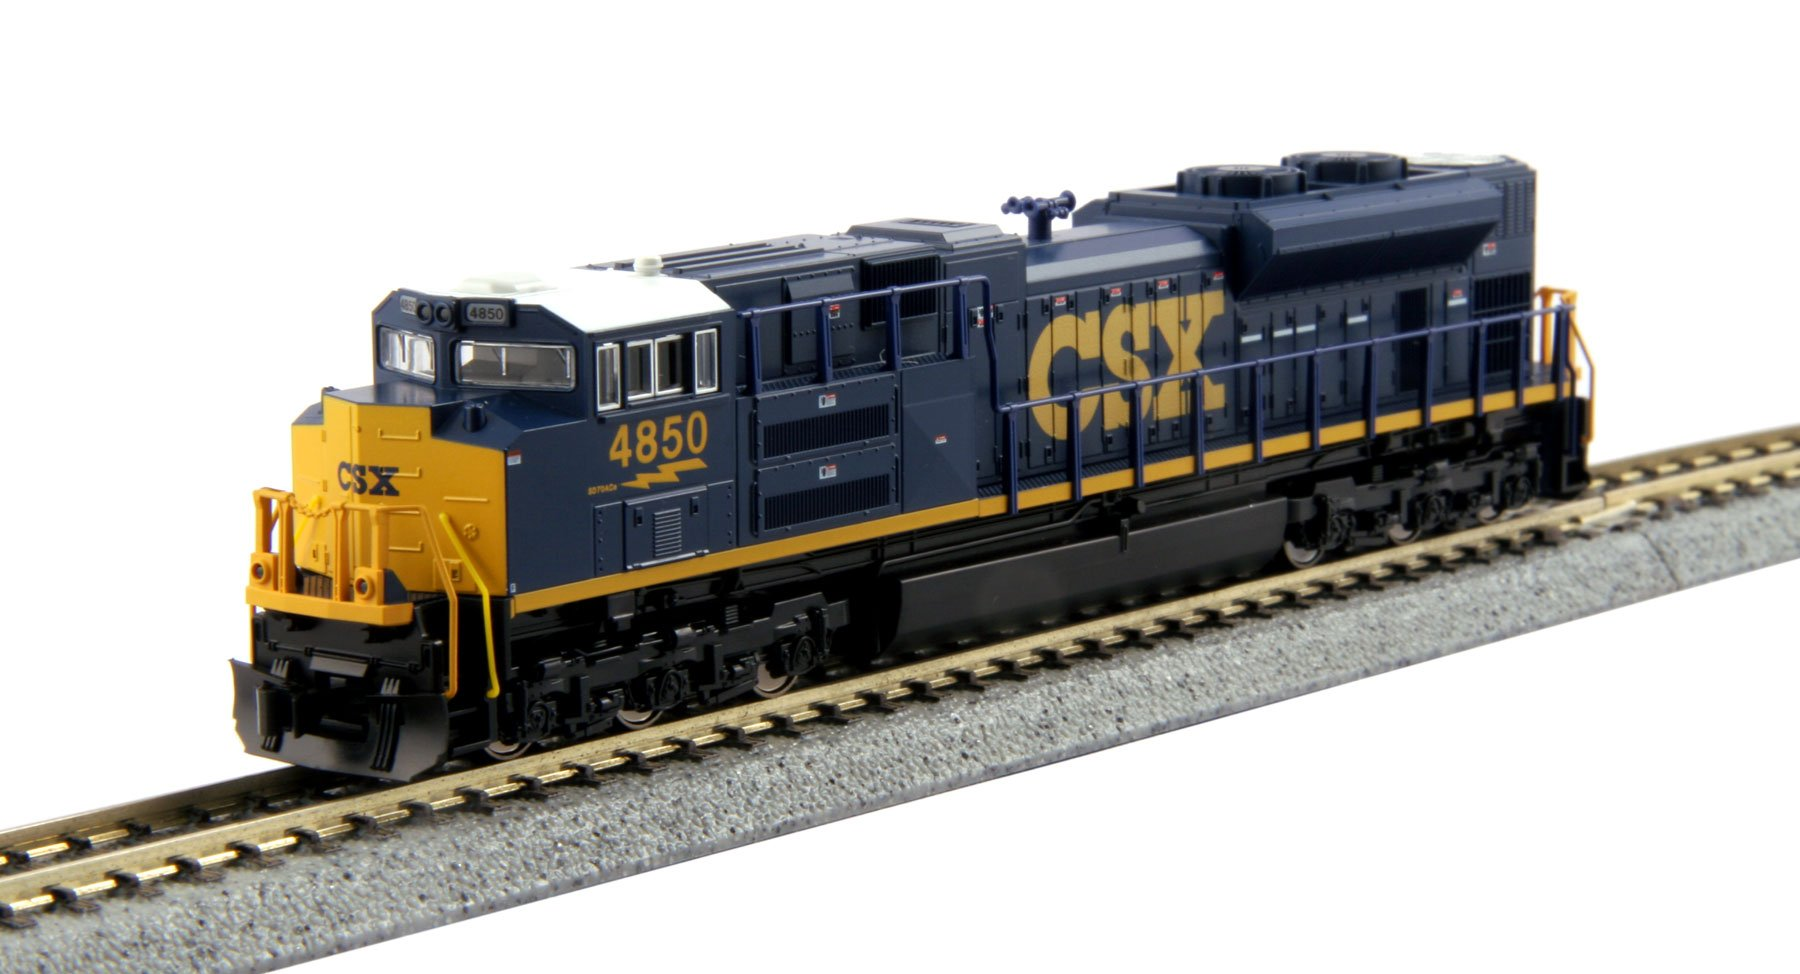 Kato USA Model Train Products N EMD #4850 SD70ACe CSX Train by Kato USA Model Train Products